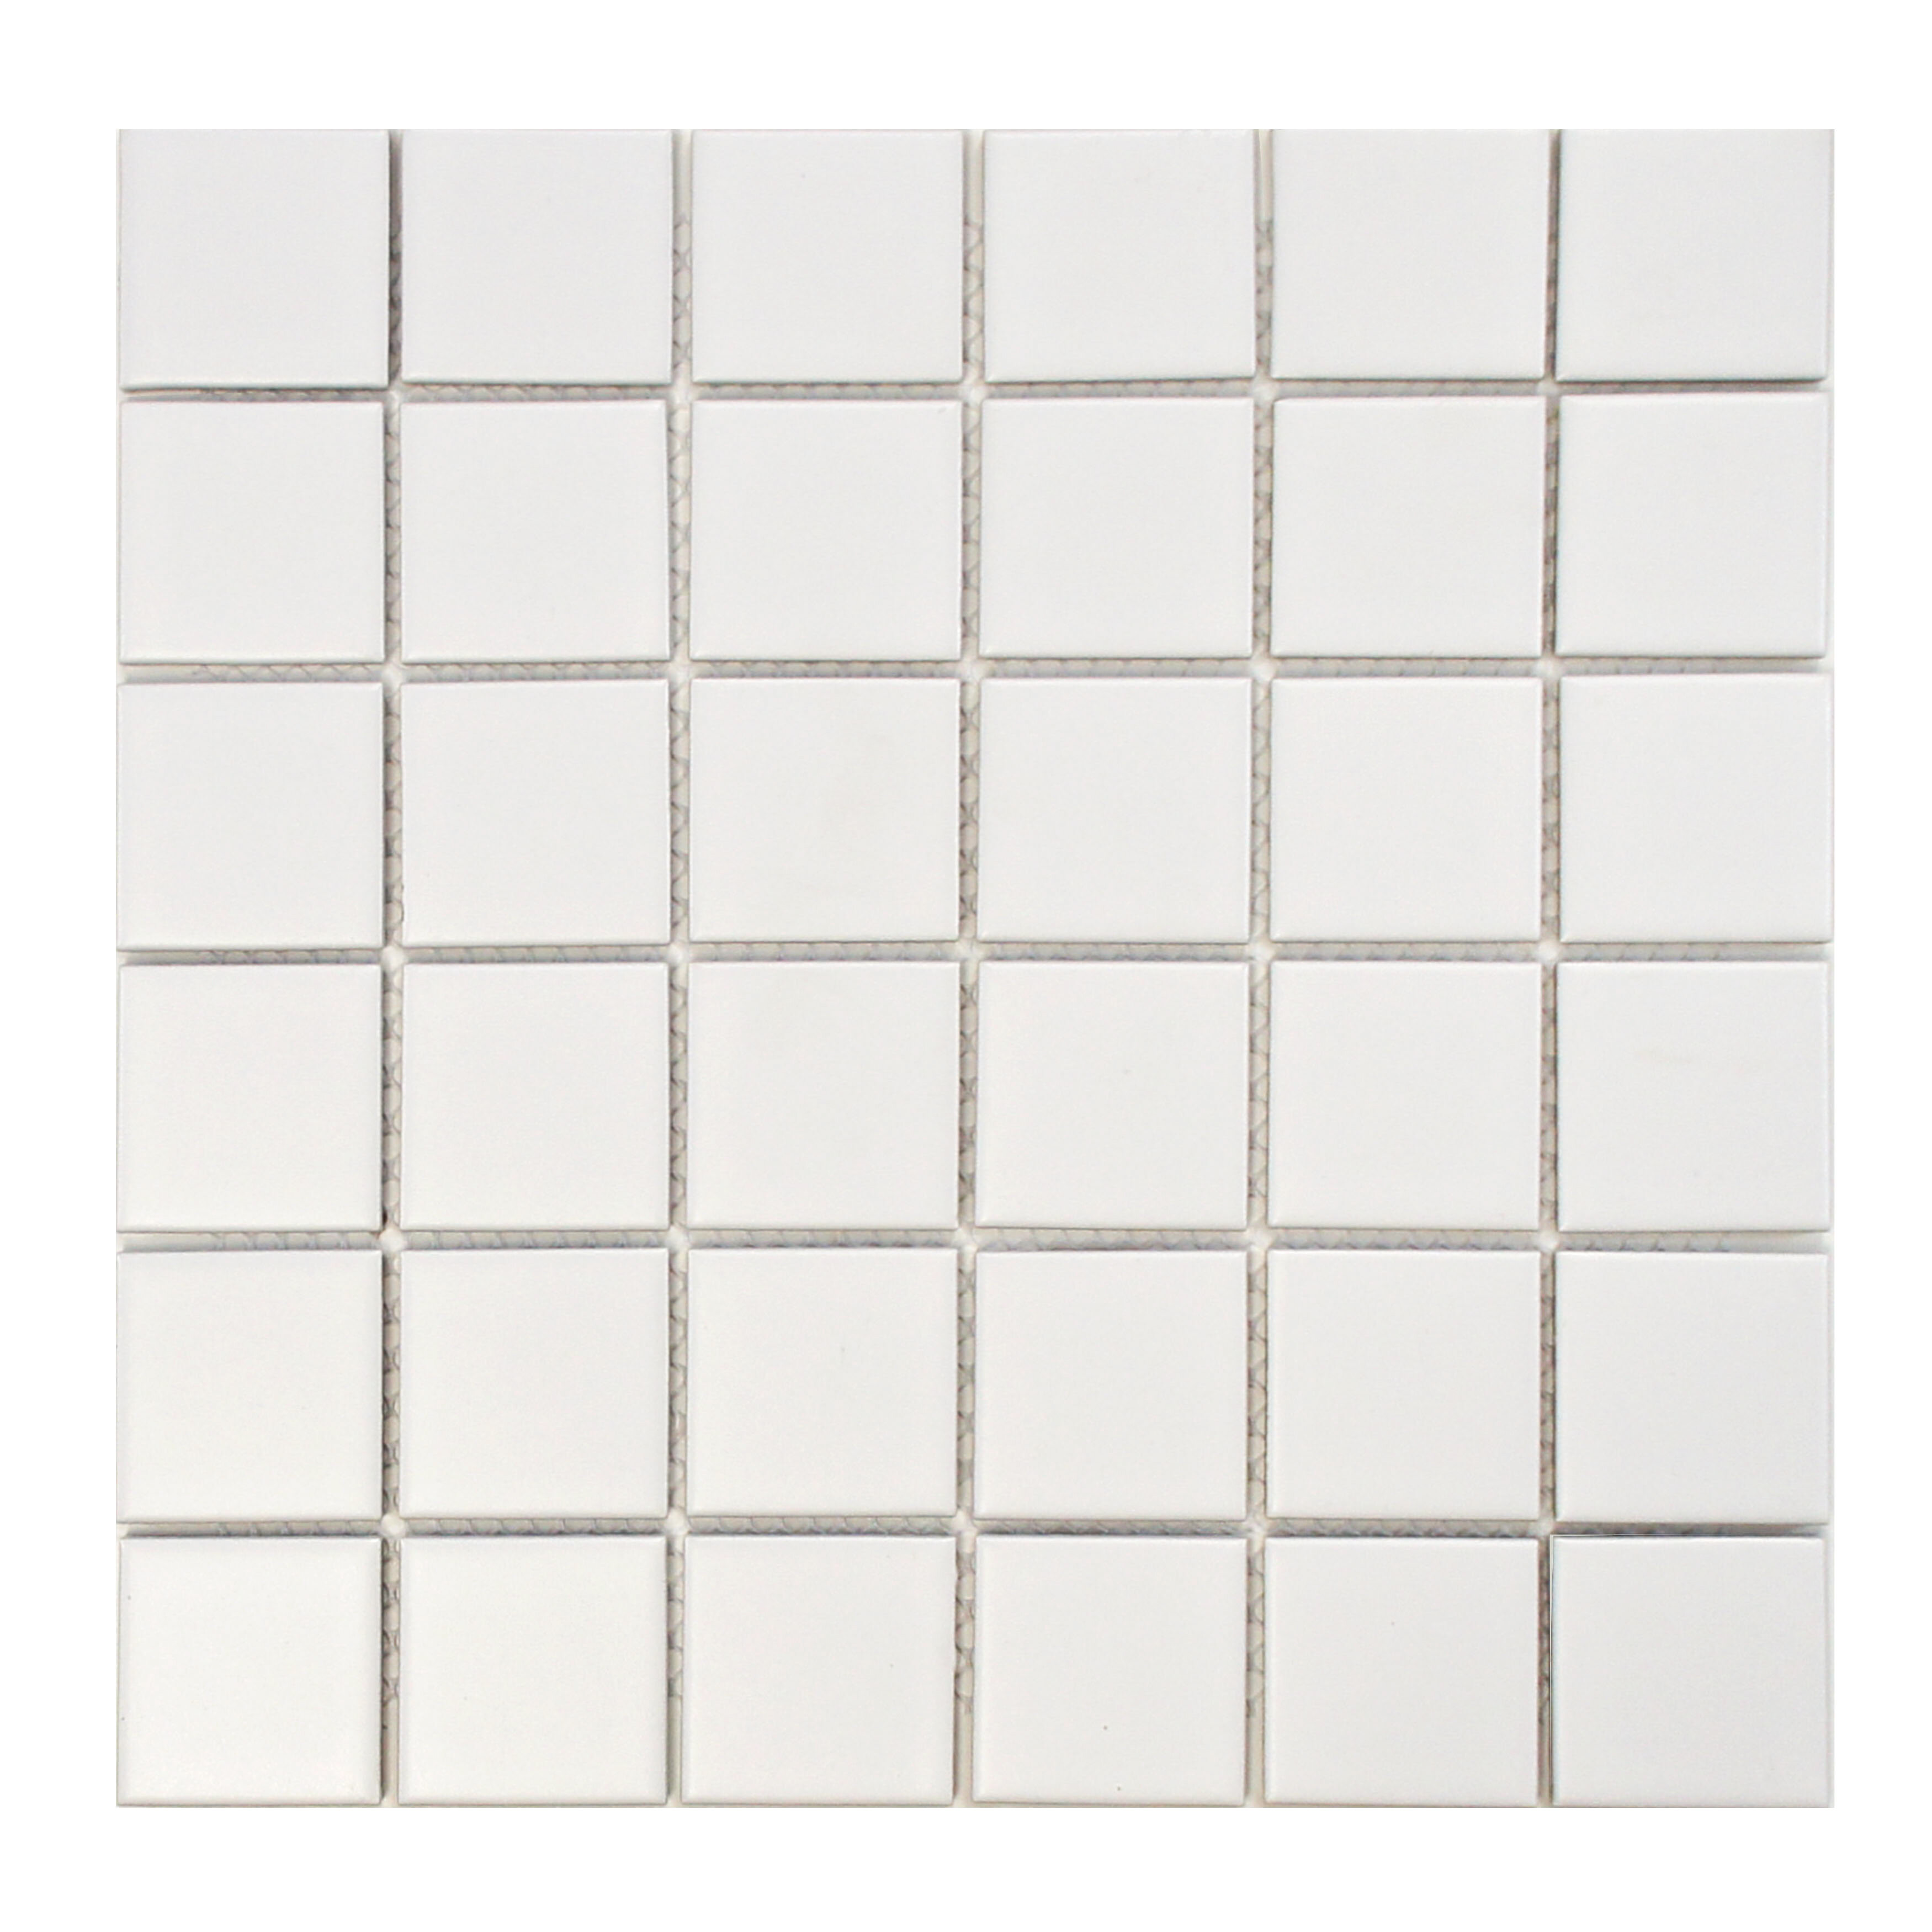 Elitetile Retro Quad 2 X Porcelain Mosaic Tile In Matte White Reviews Wayfair